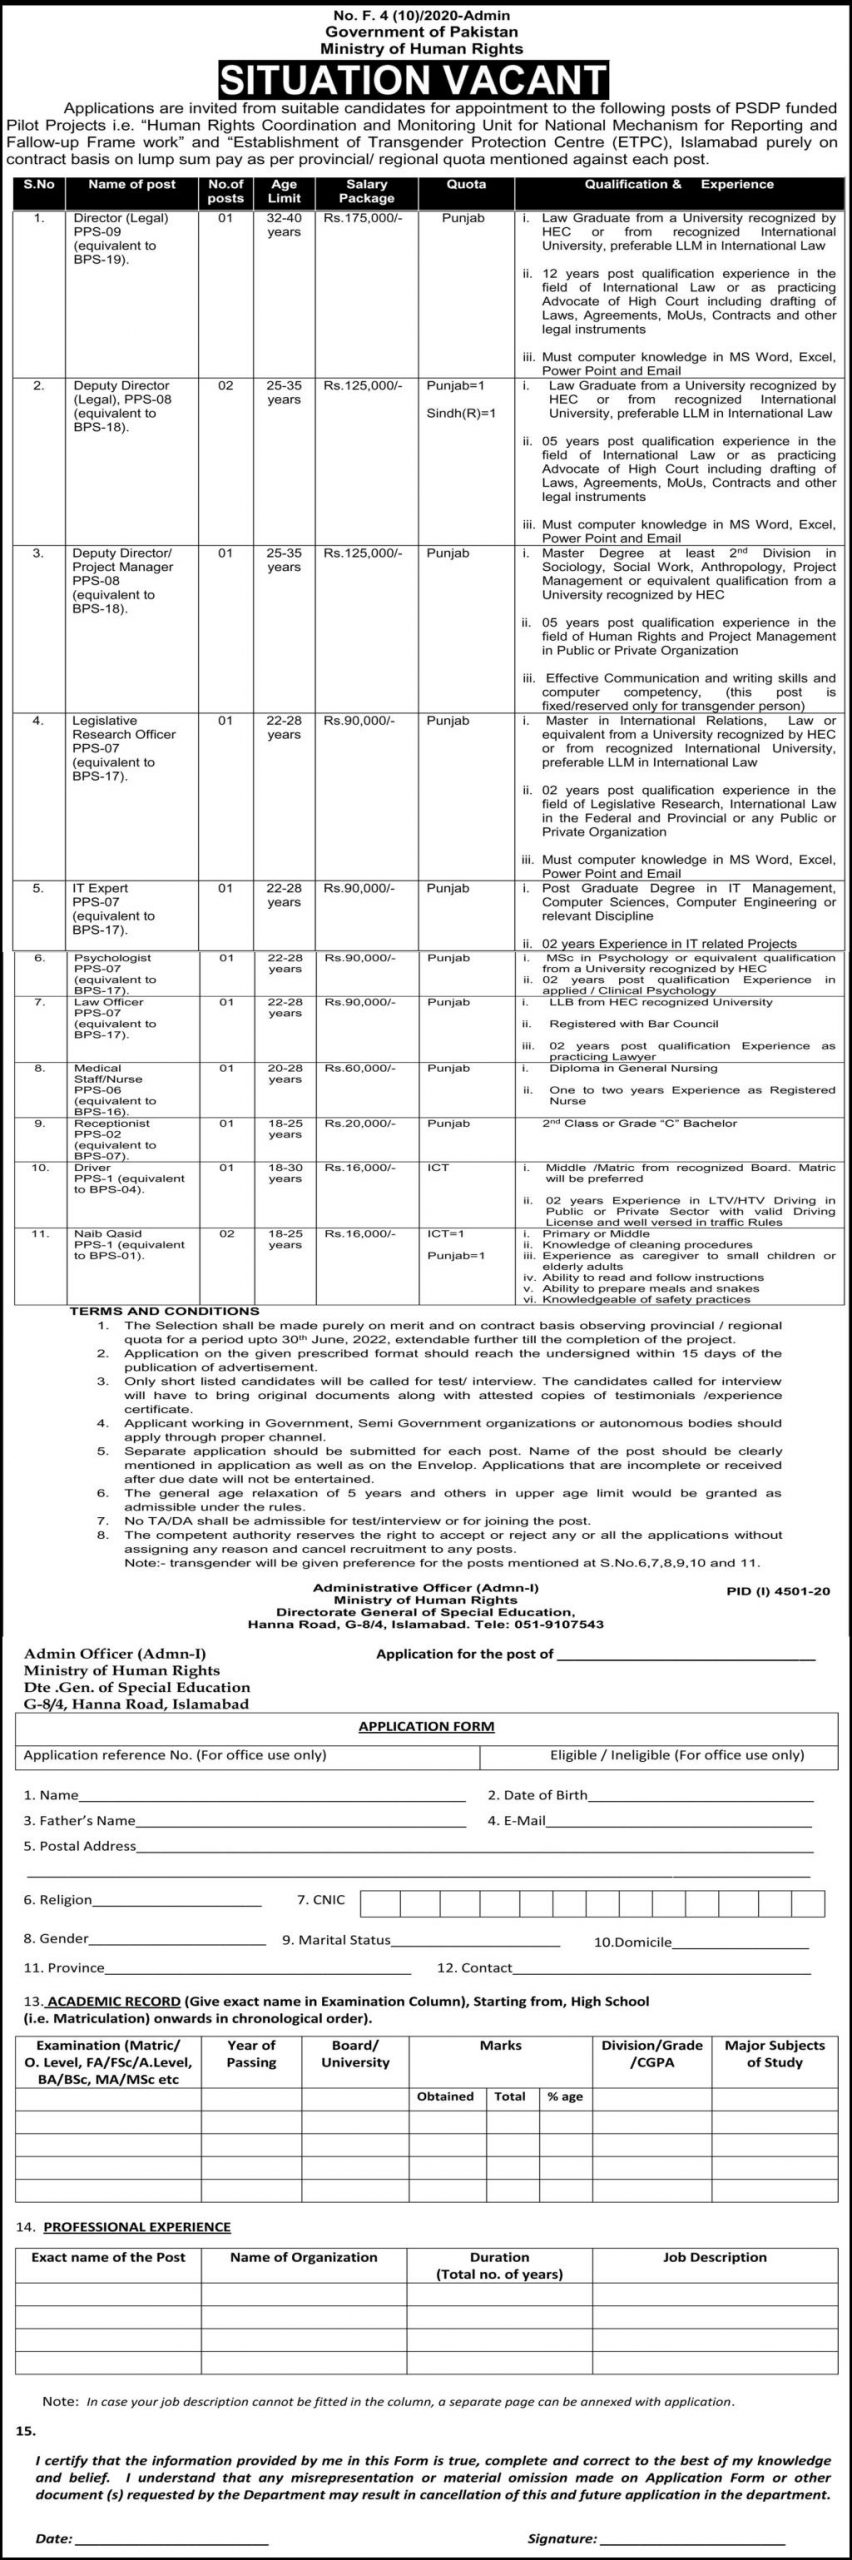 Government of Pakistan Ministry of Human Rights Jobs February 2021